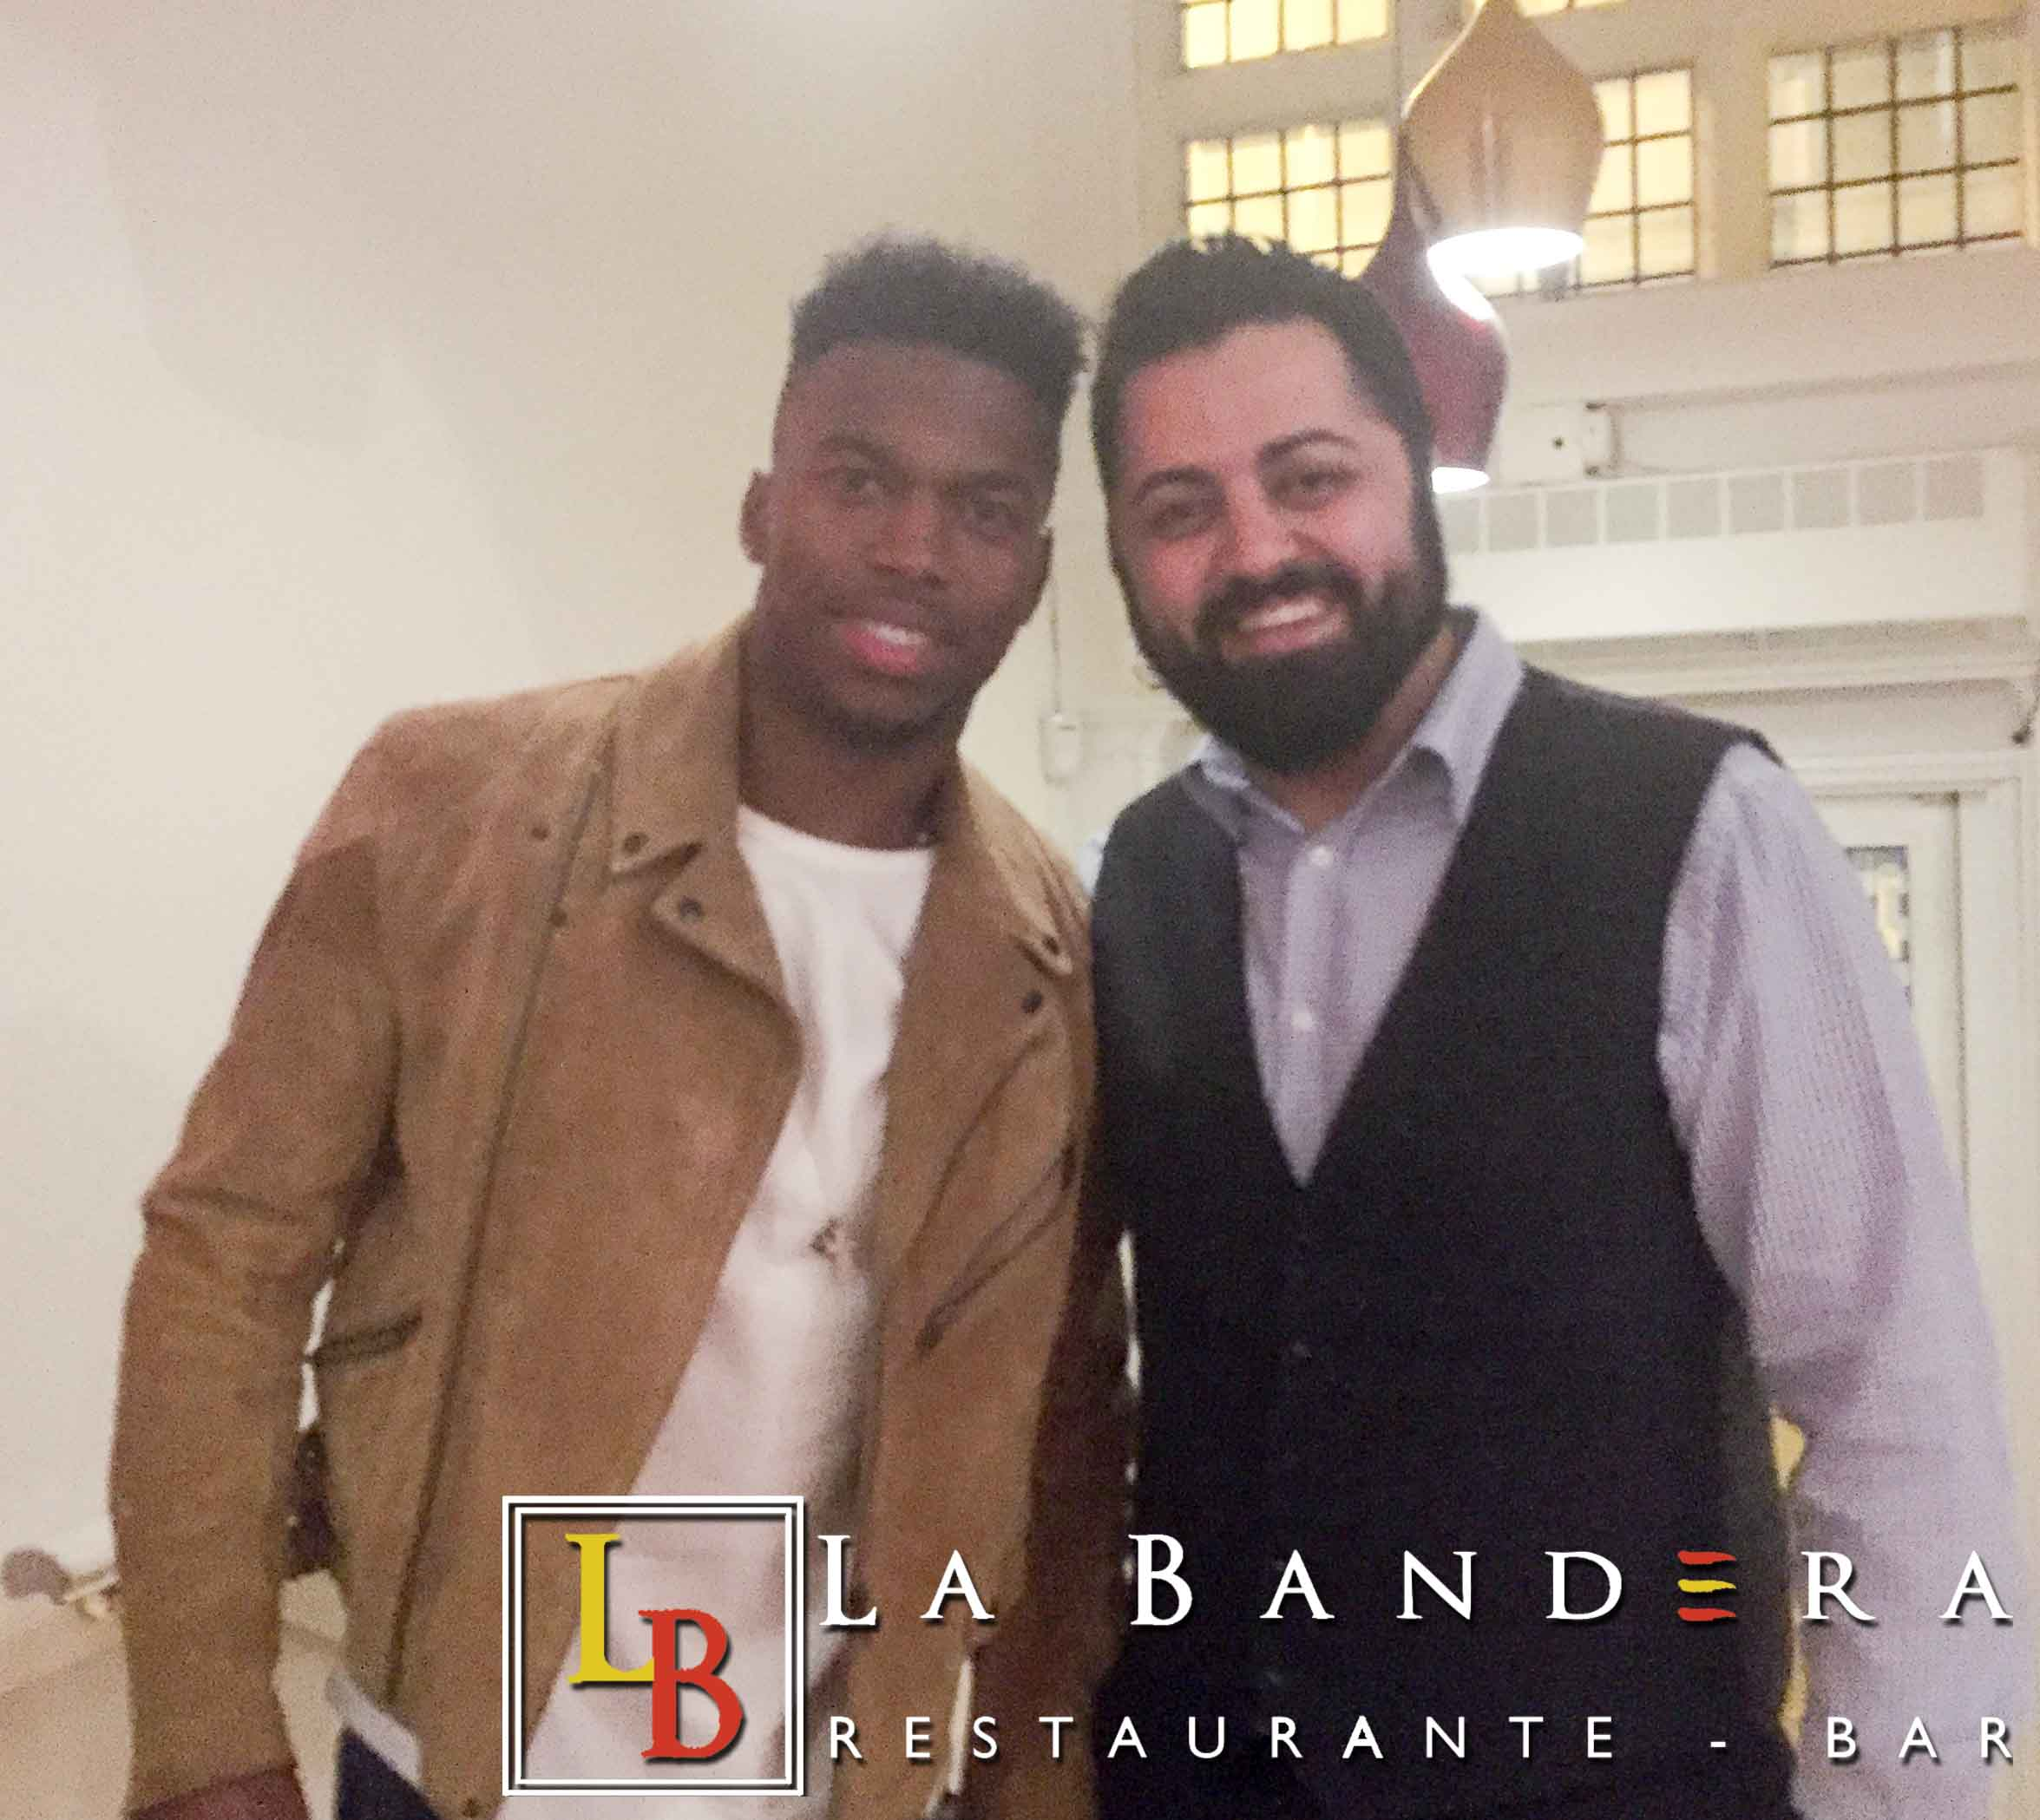 Daniel Sturridge at La Bandera